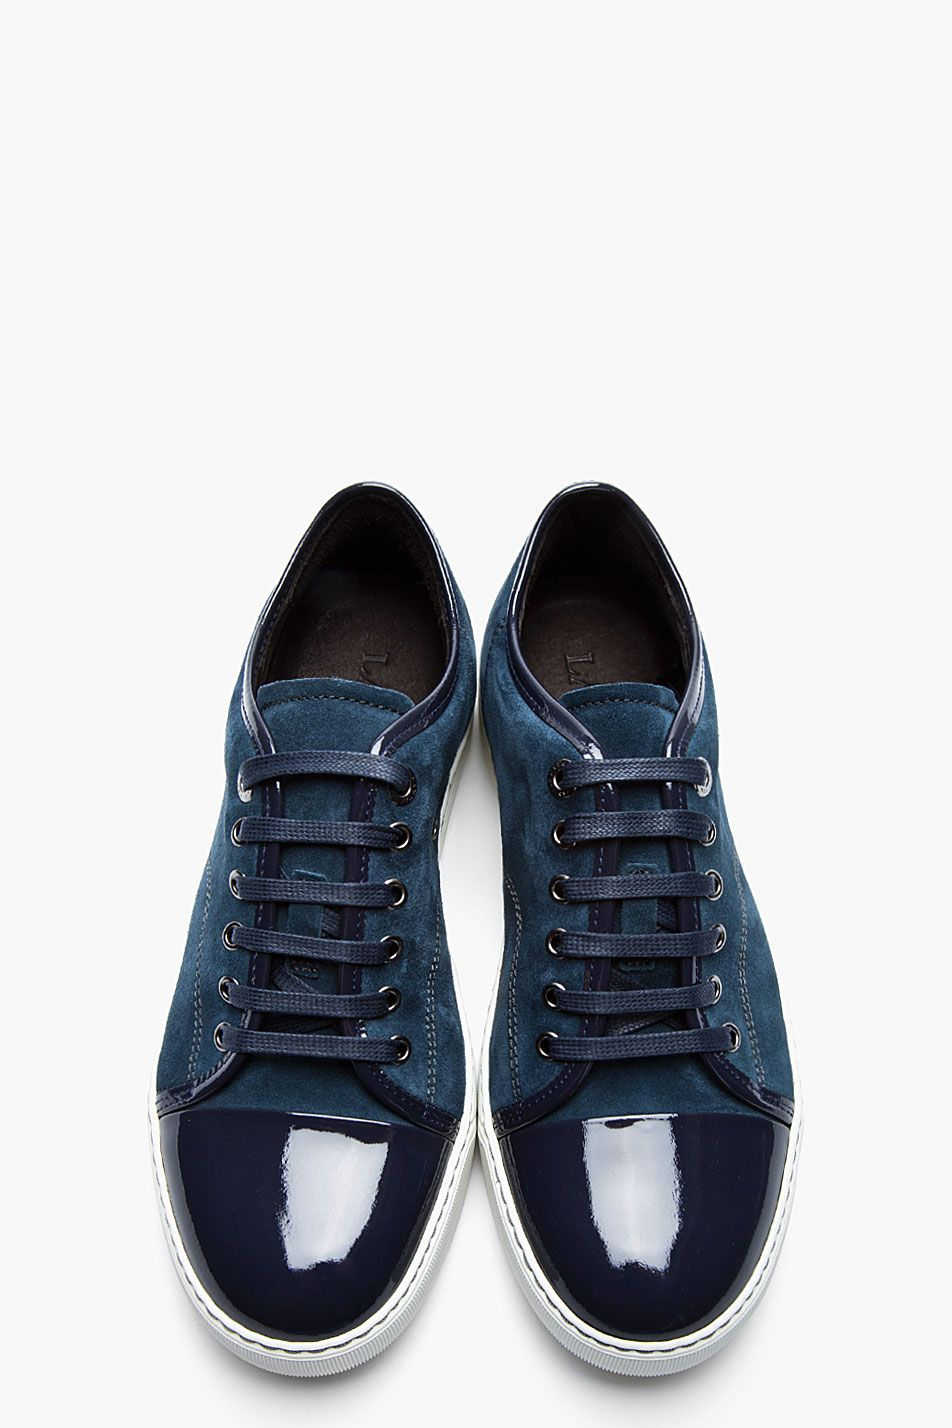 separation shoes 086cc 892f6 LANVIN Navy two-tone patent and suede tennis shoes